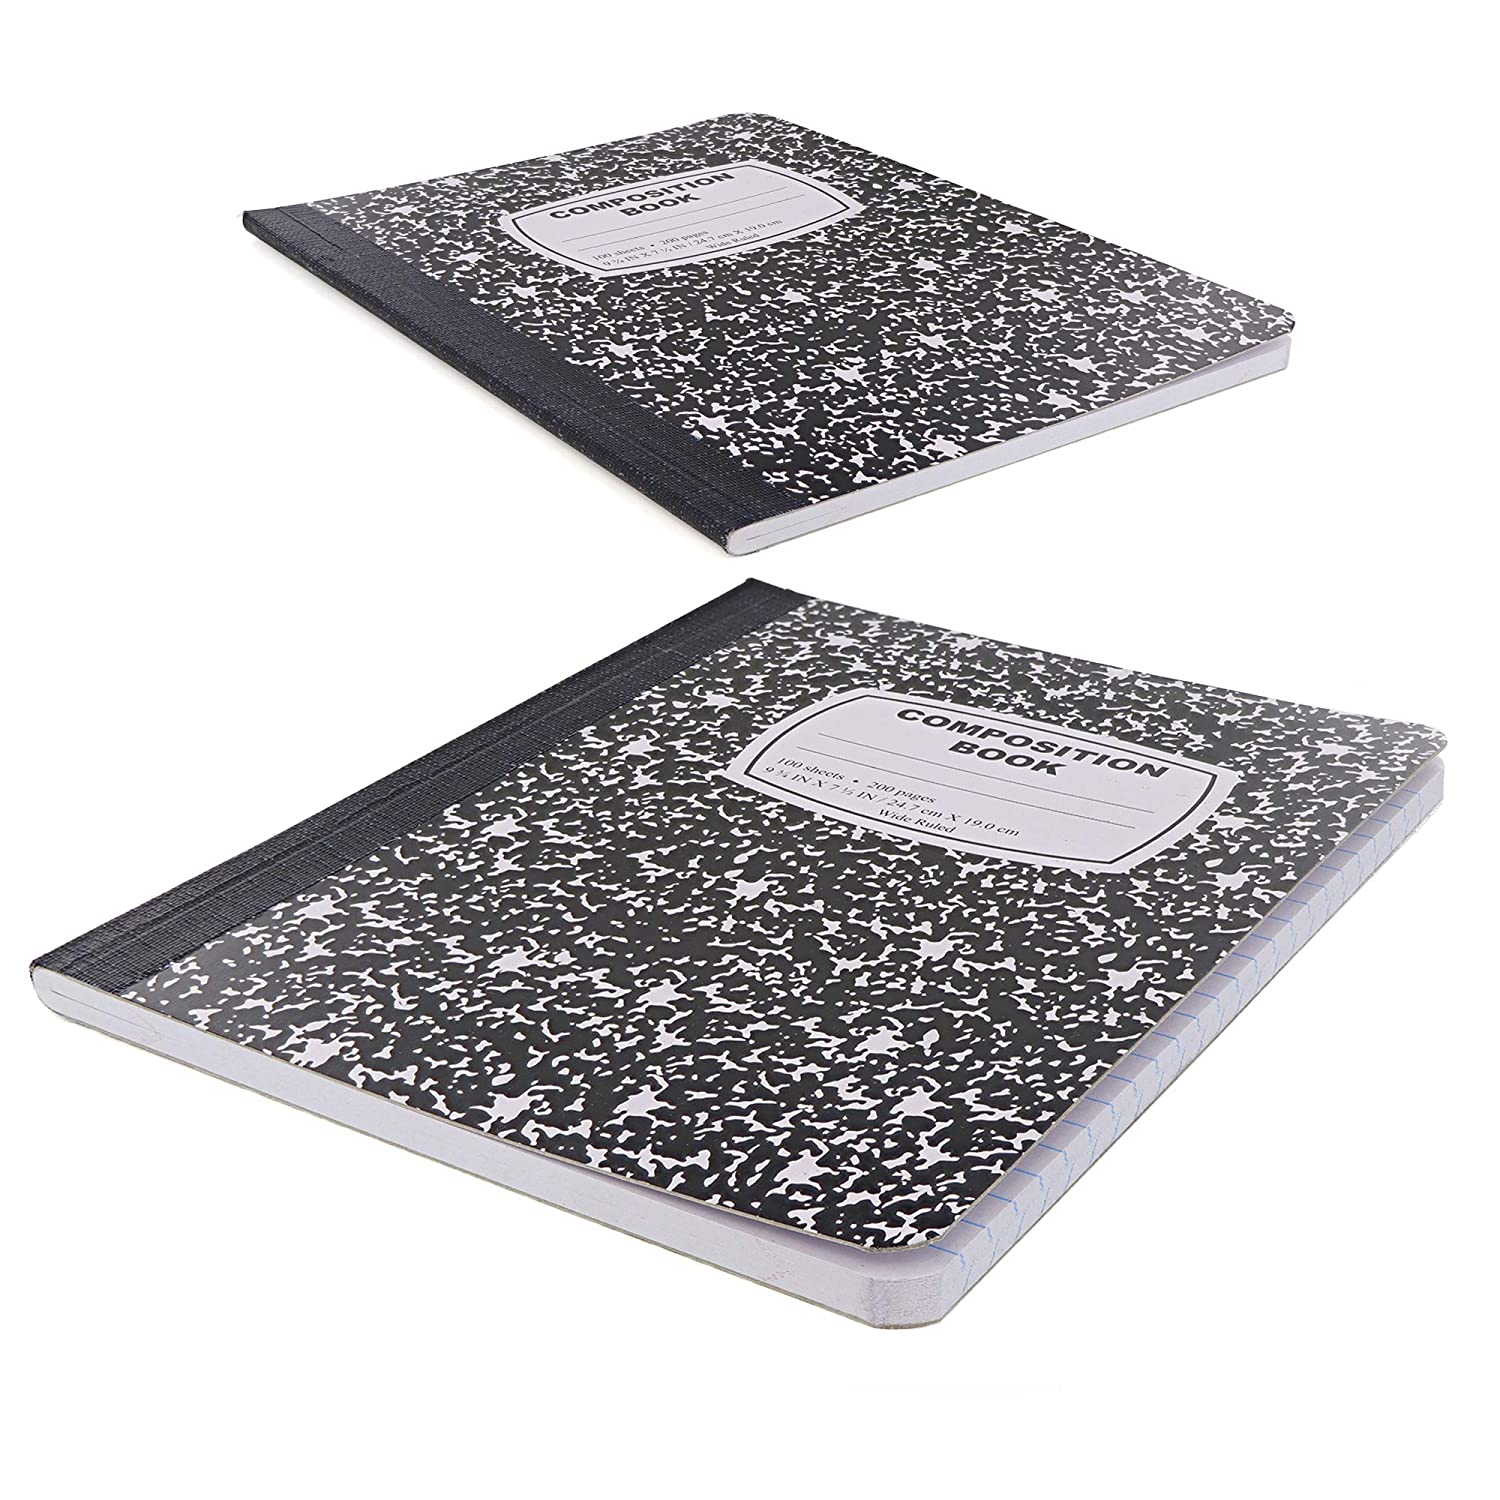 Emraw Composition Books Black /& White Marble Style Durable Cover Notebooks Wide Ruled Ruled Paper 100 Sheets Writing Book for school and journaling Pack of 2